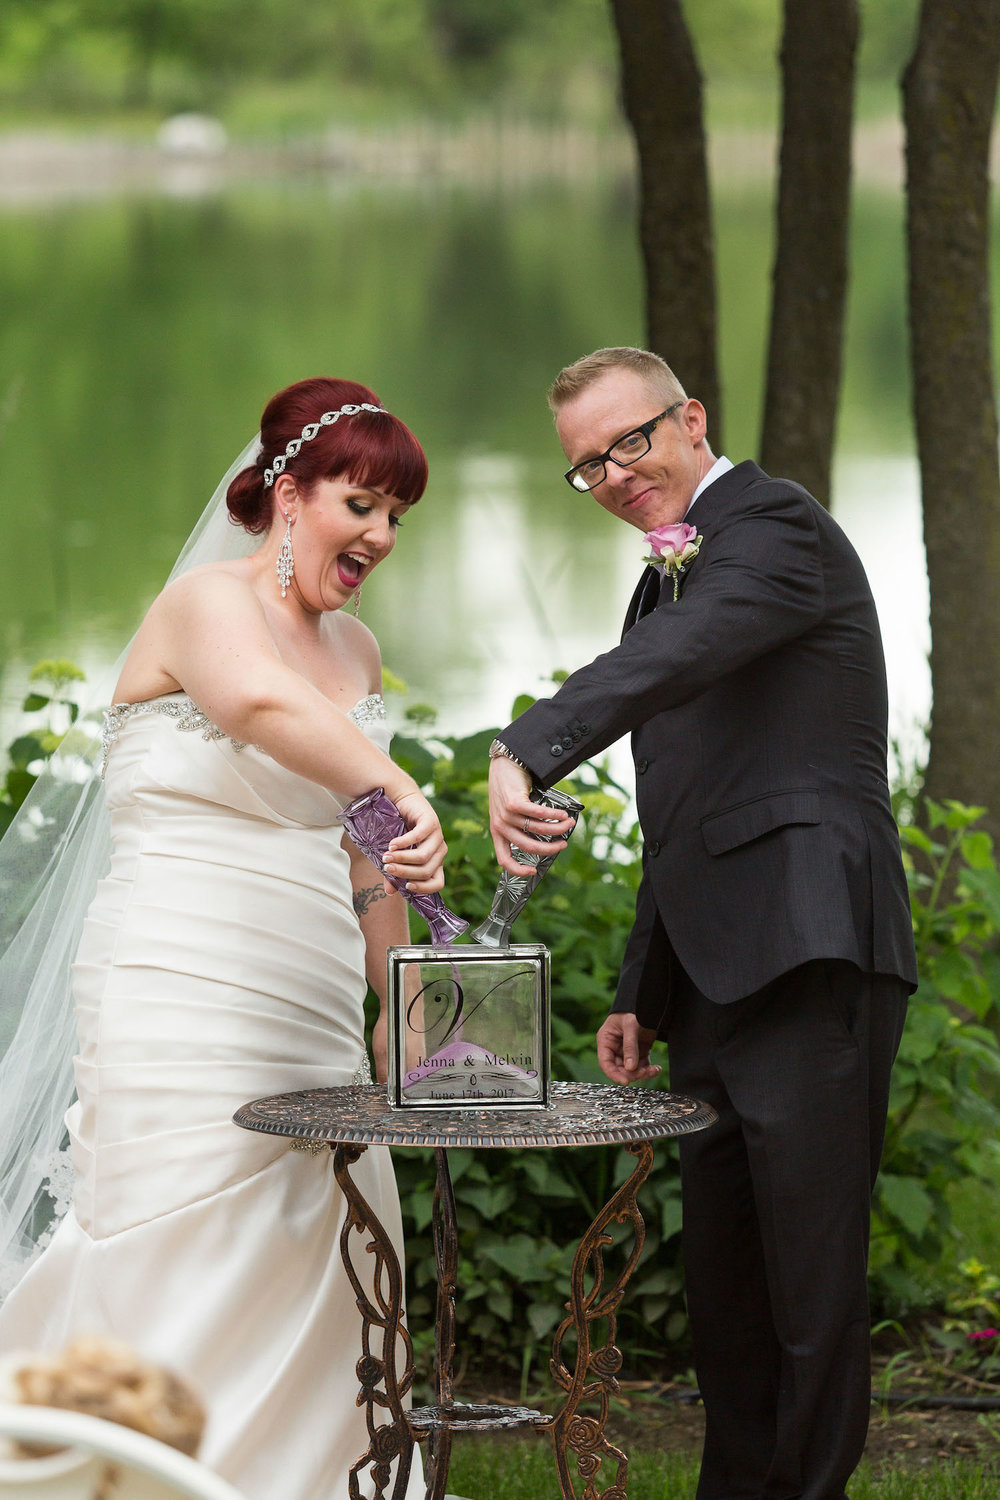 Cindyrella's Garden outdoor ceremony by the lake with a redhead bride, sand ceremony